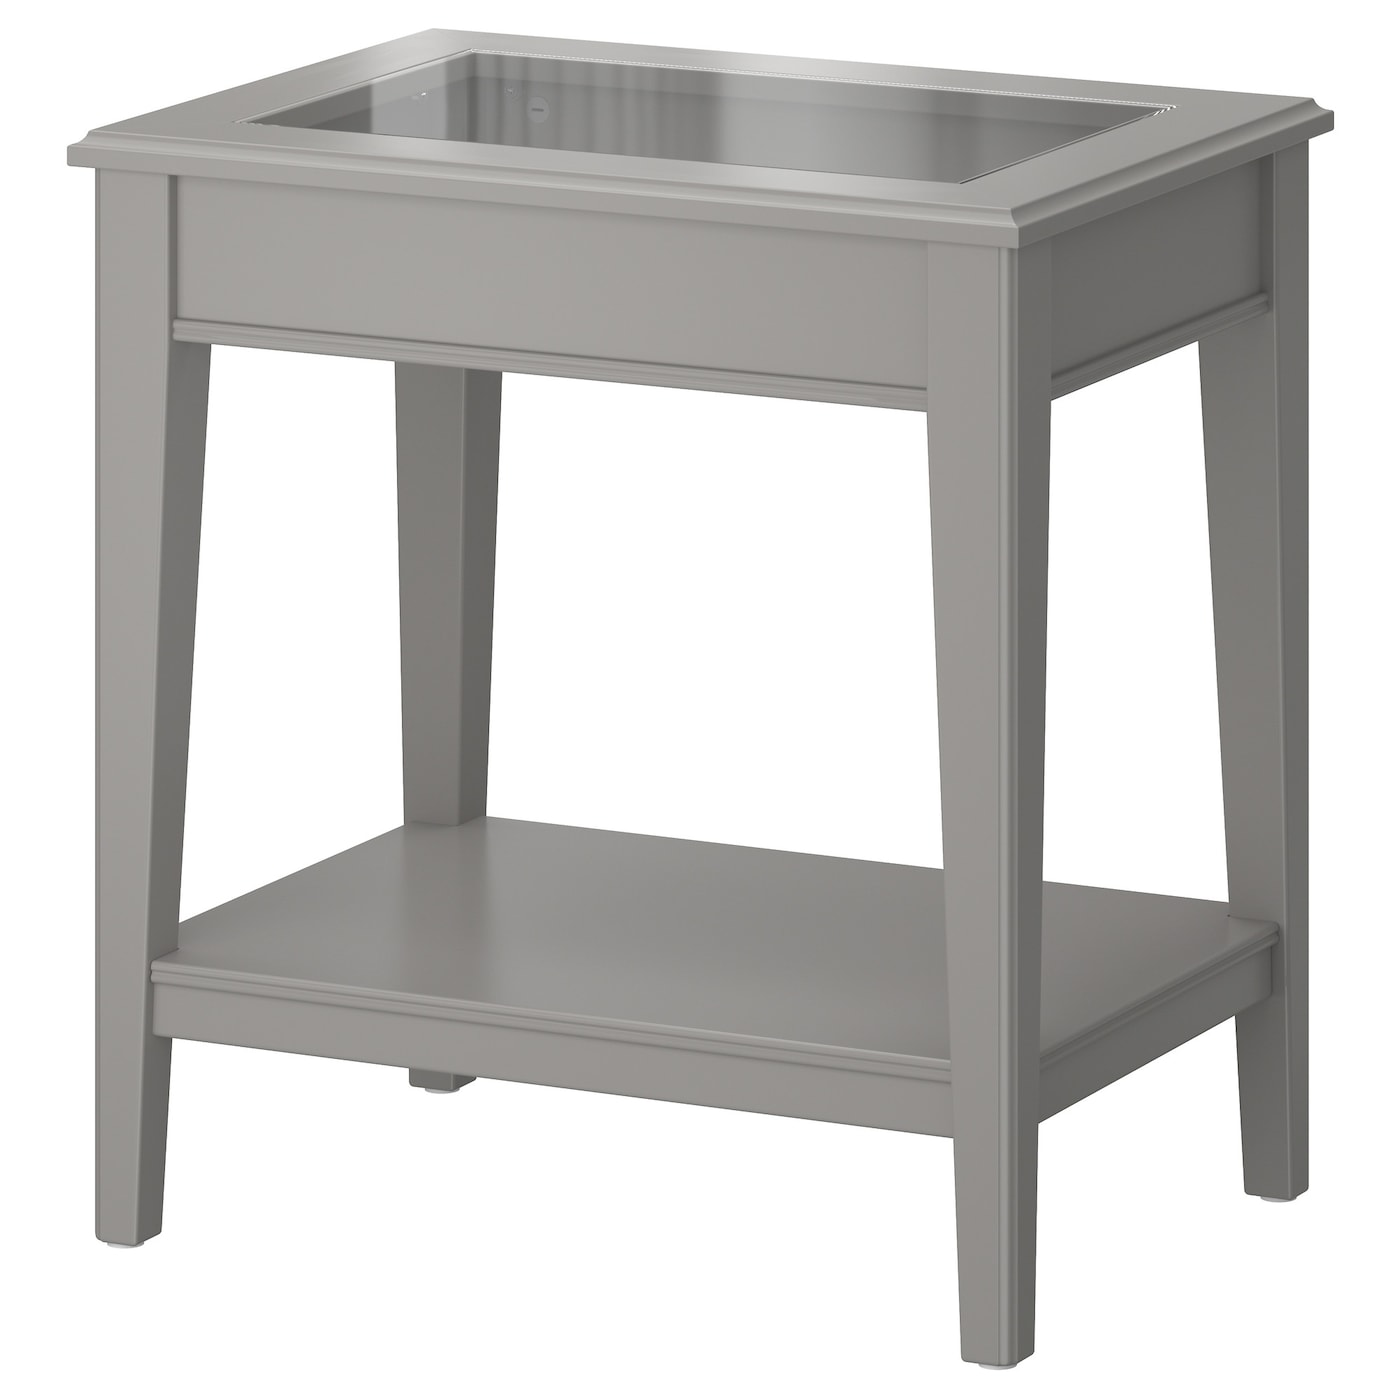 LIATORP Side table Grey glass 57x40 cm IKEA